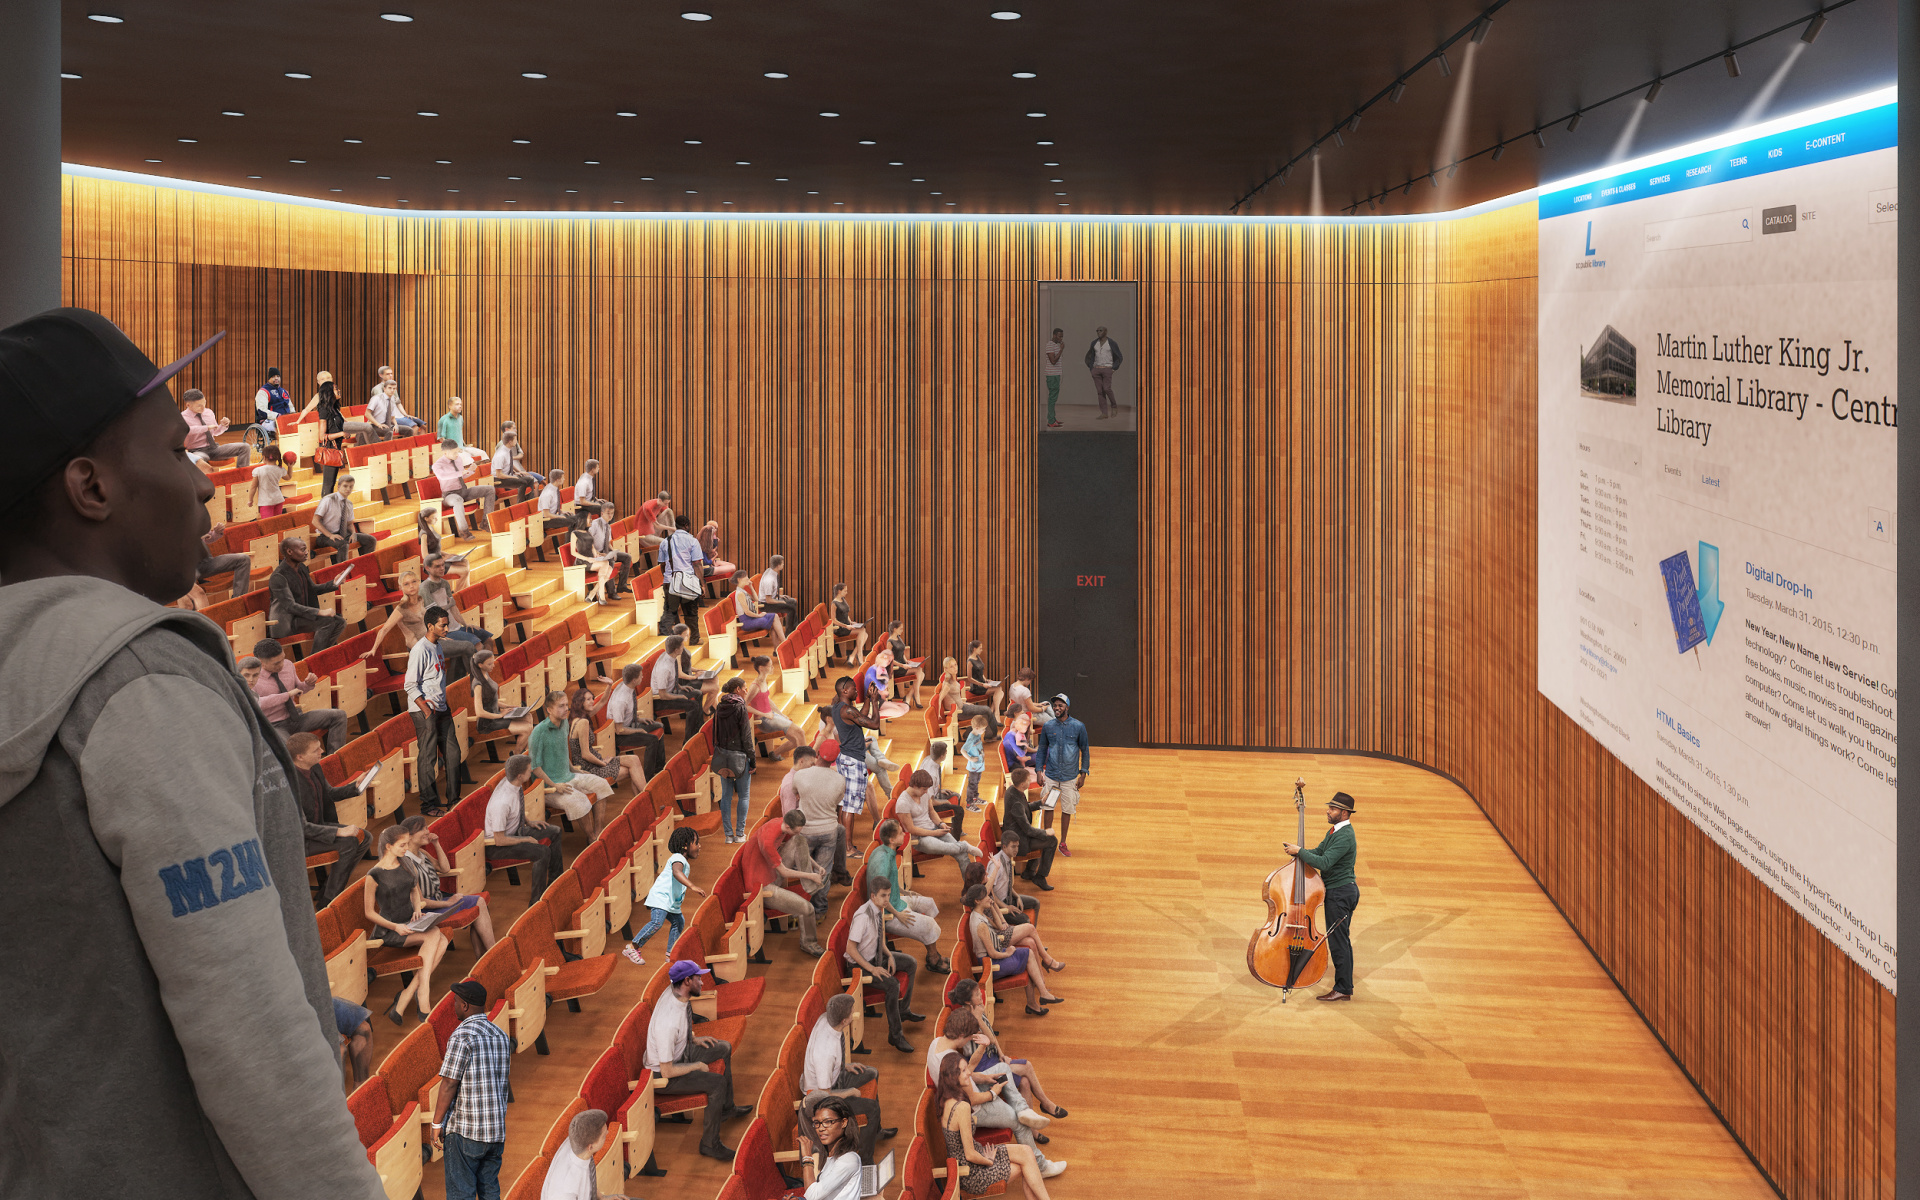 Renders used by Francine Houben (Mecanoo) for the auditorium of the Martin Luther King Jr. Memorial Library